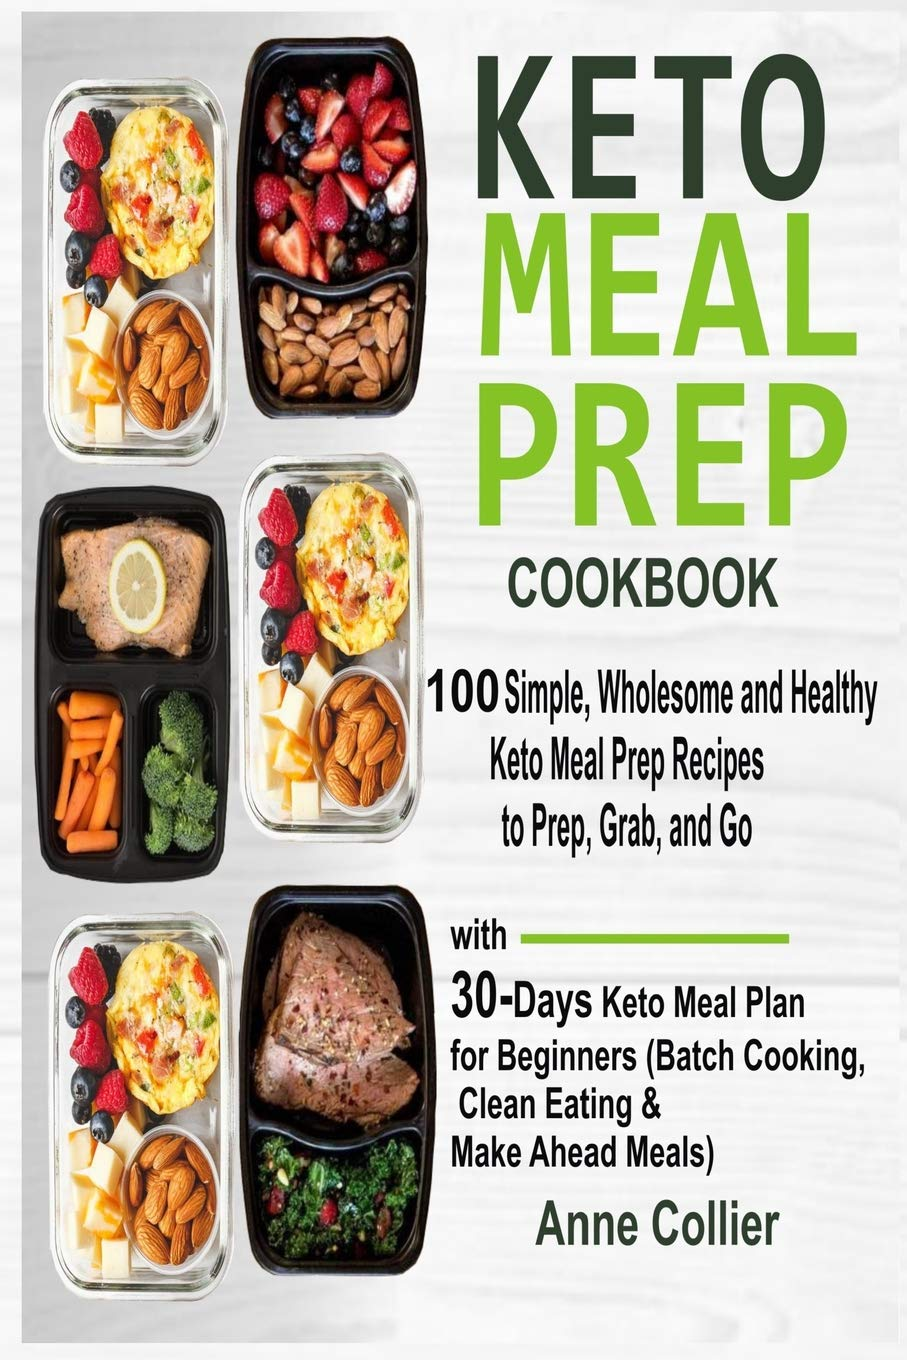 Make Ahead Meals Over 100 Easy Time-Saving Recipes